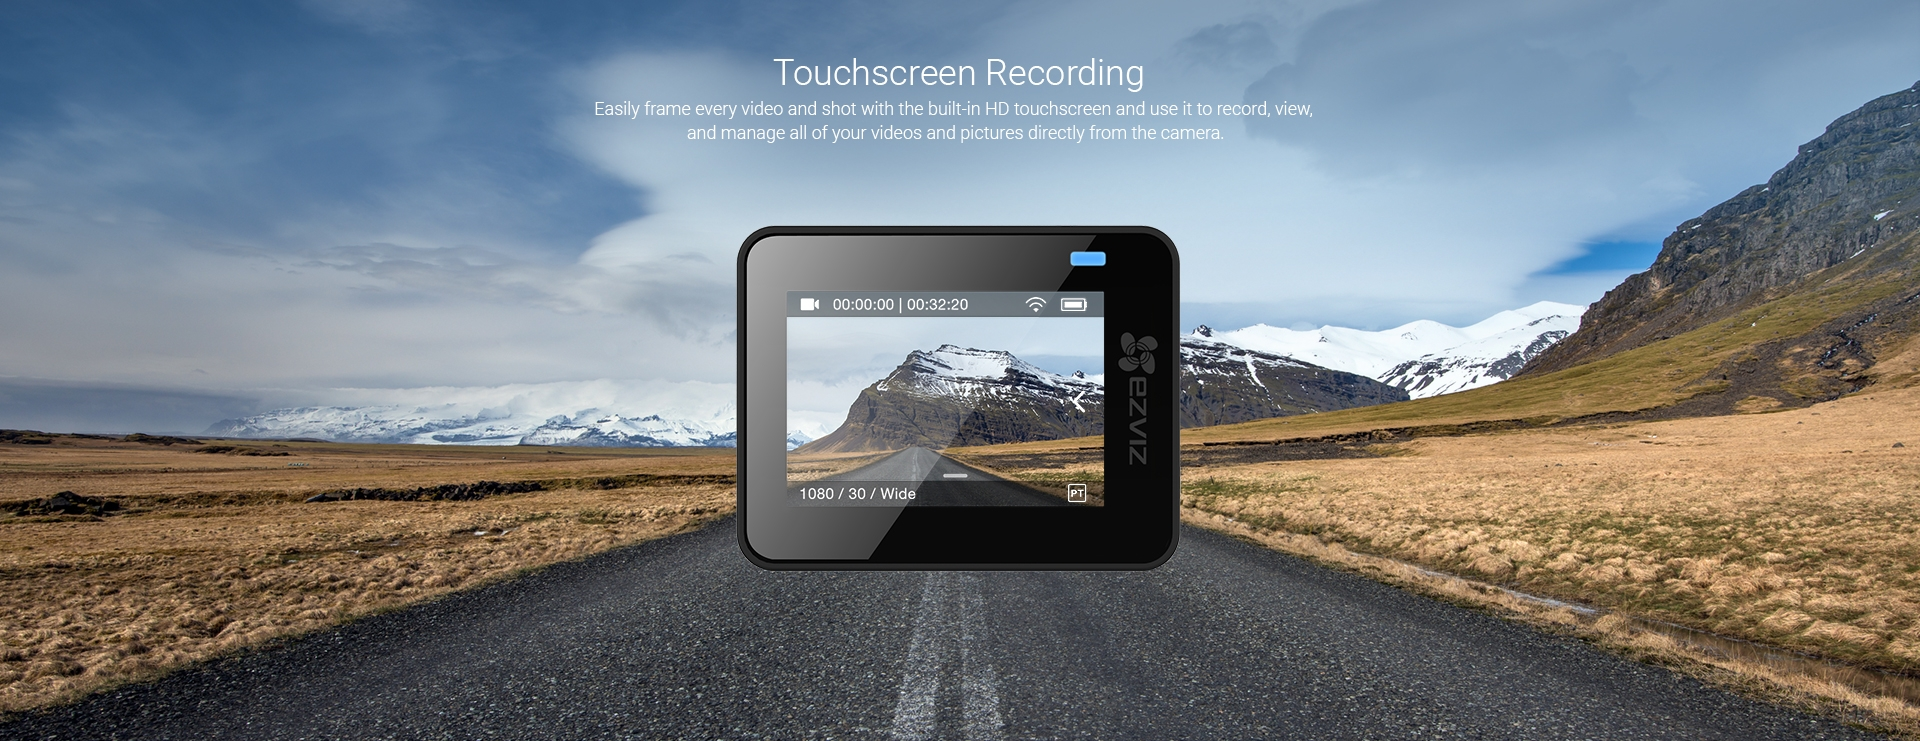 Touchscreen Recording